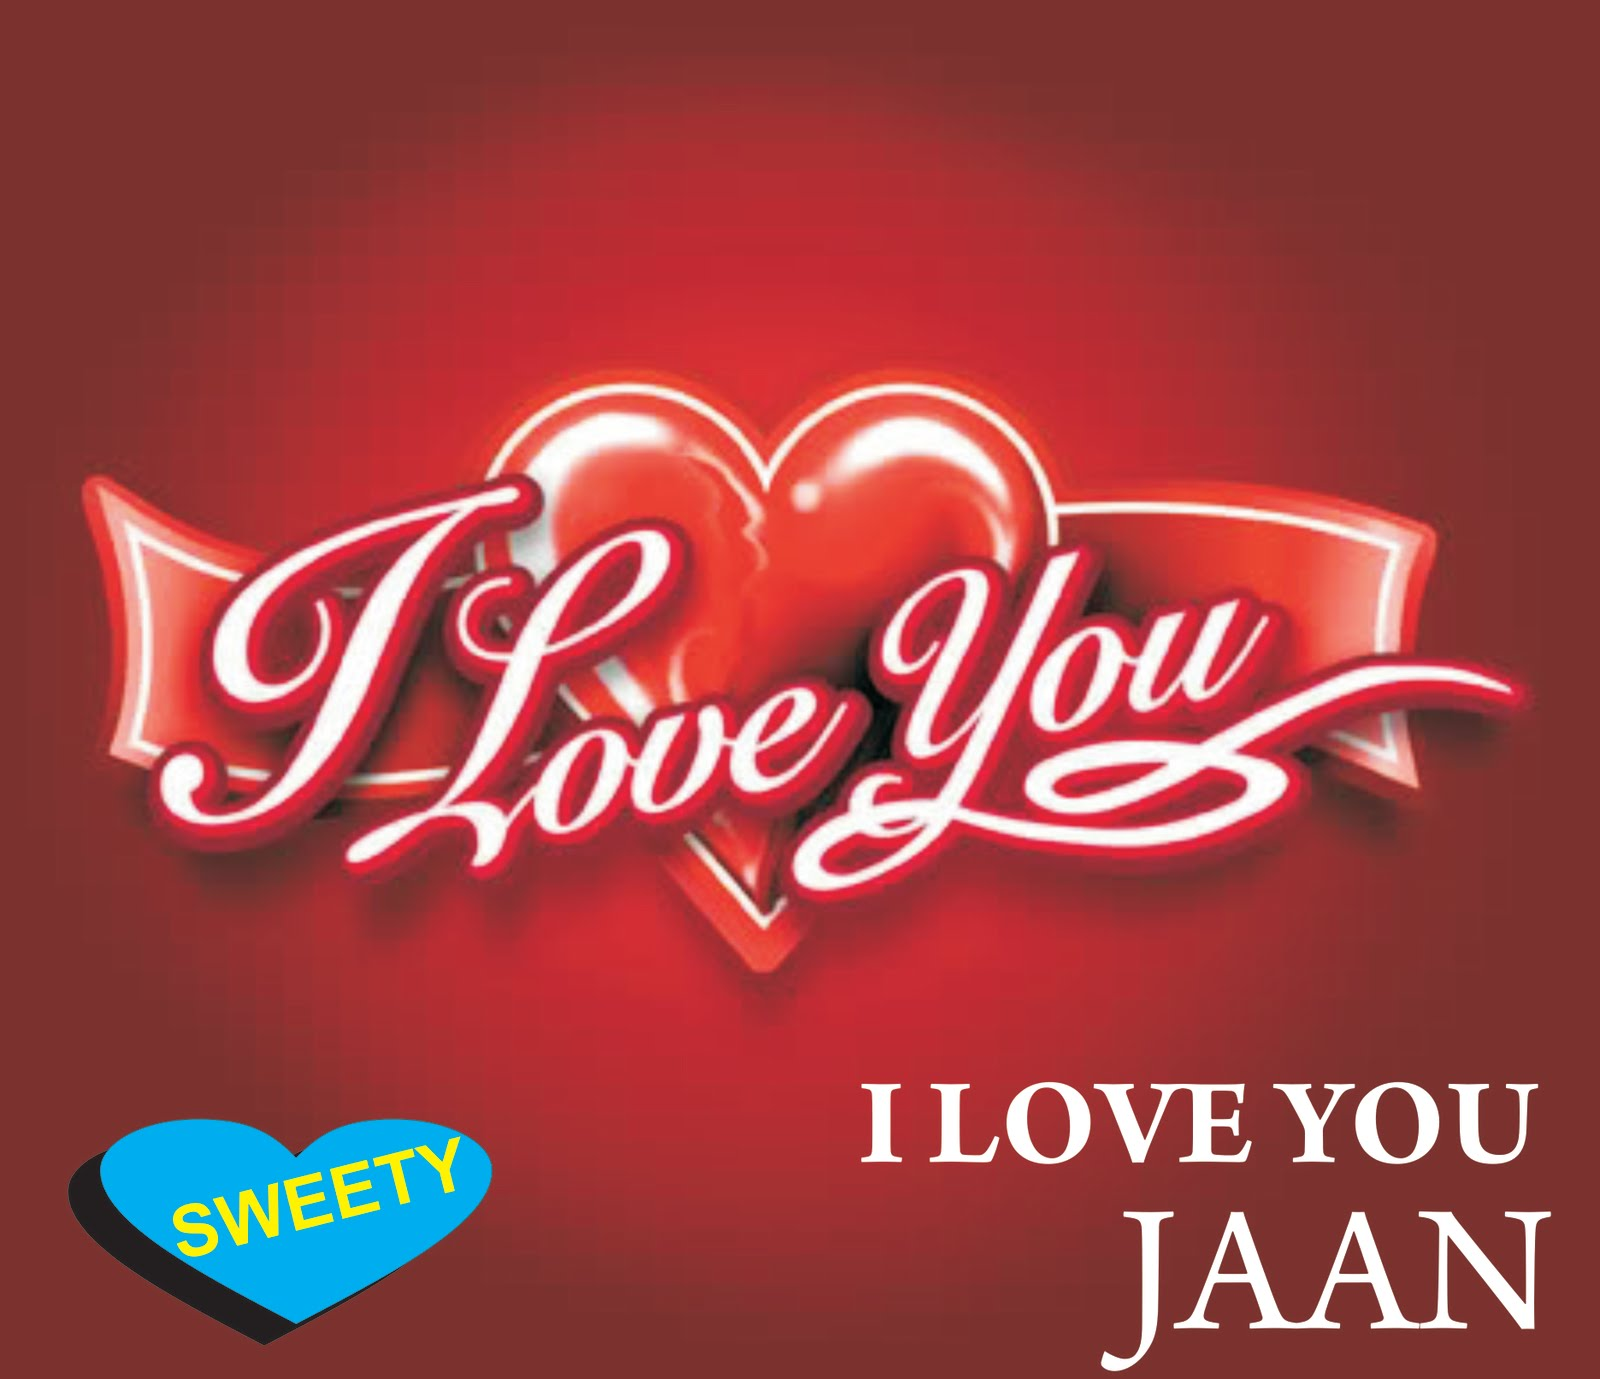 I Love You Jaan Photo - impremedia.net